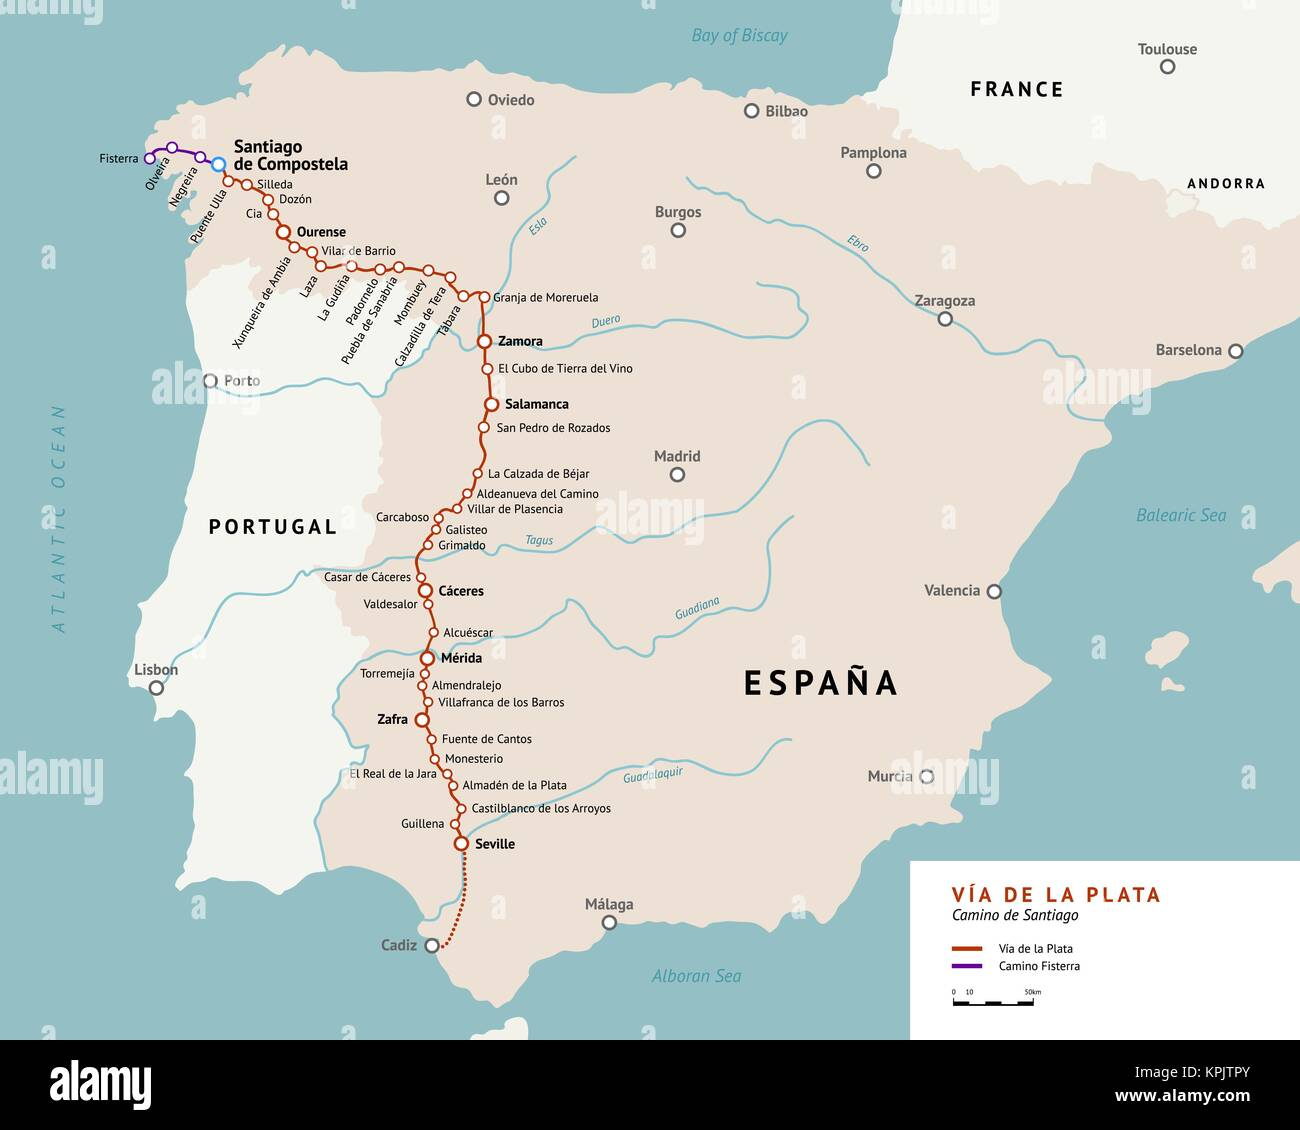 V    a de la Plata map  The Silver route  Camino De Santiago or The Way     V    a de la Plata map  The Silver route  Camino De Santiago or The Way of  St James in Spain  Ancient pilgrimage path from south of Spain to the  Santiago